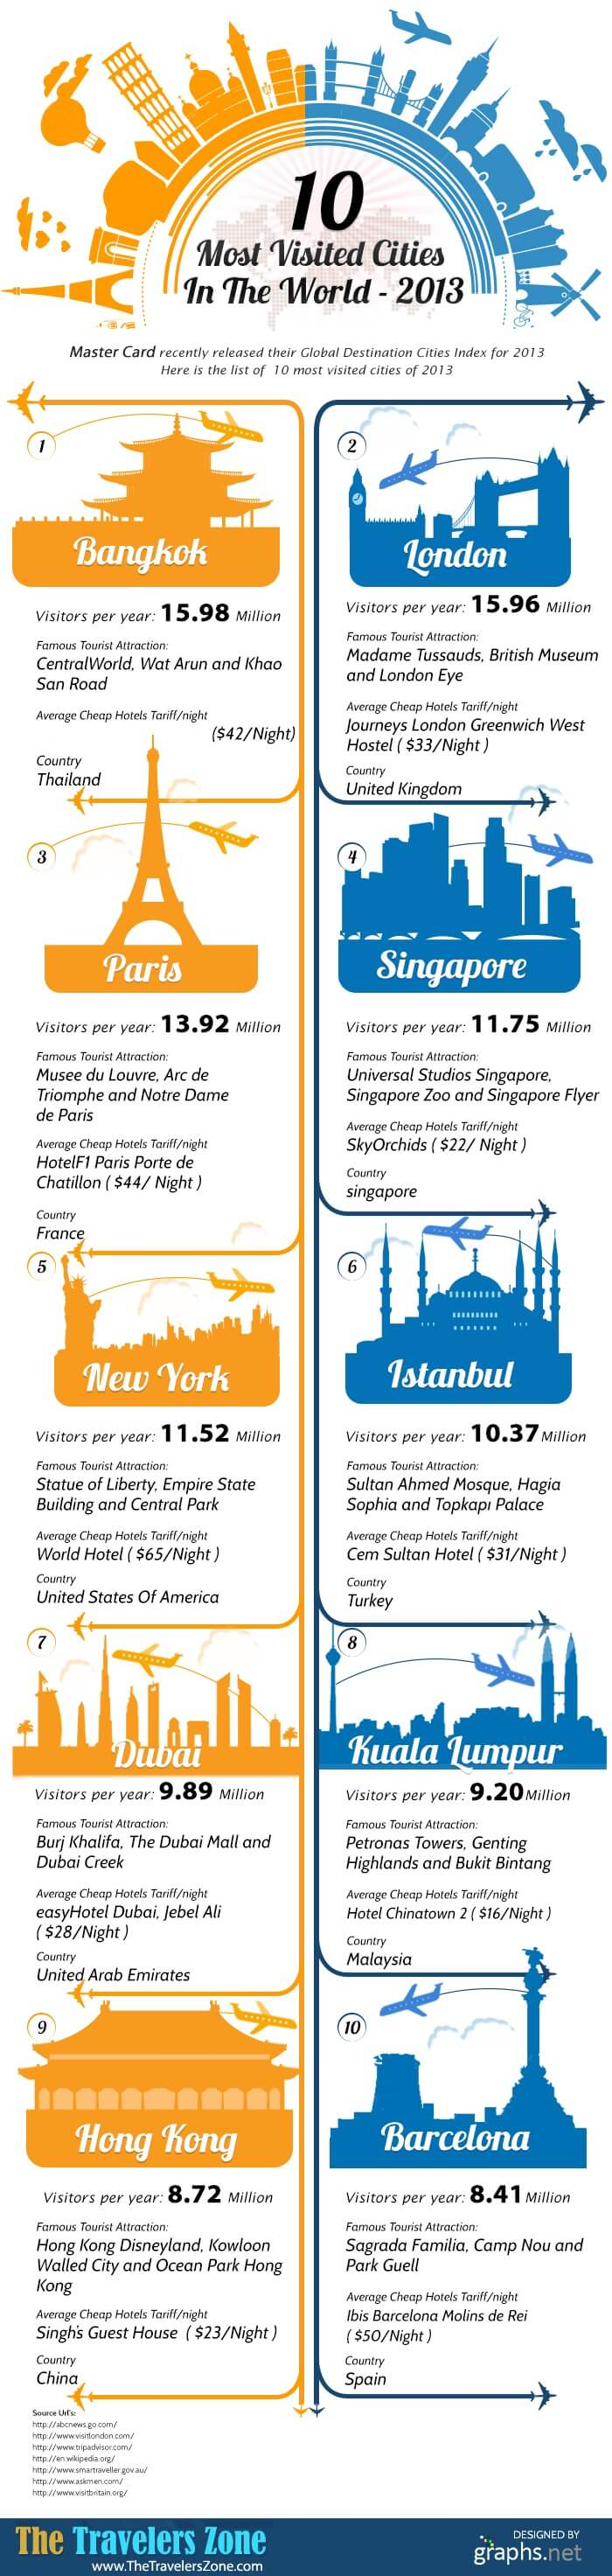 10-most-visited-cities-in-de-wereld